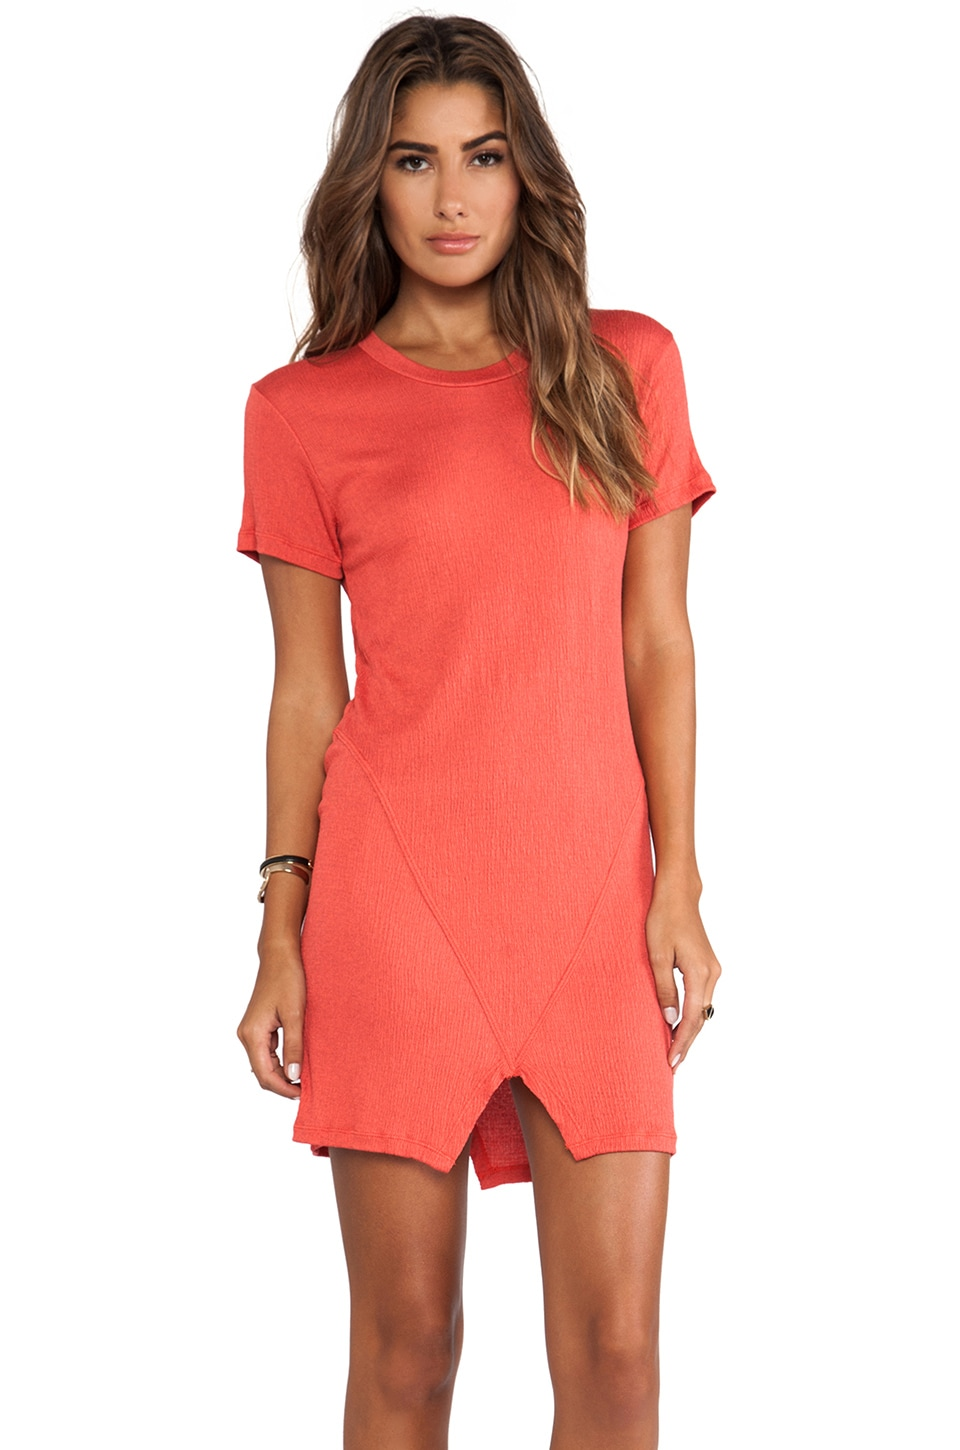 LNA Santos Dress in Coral